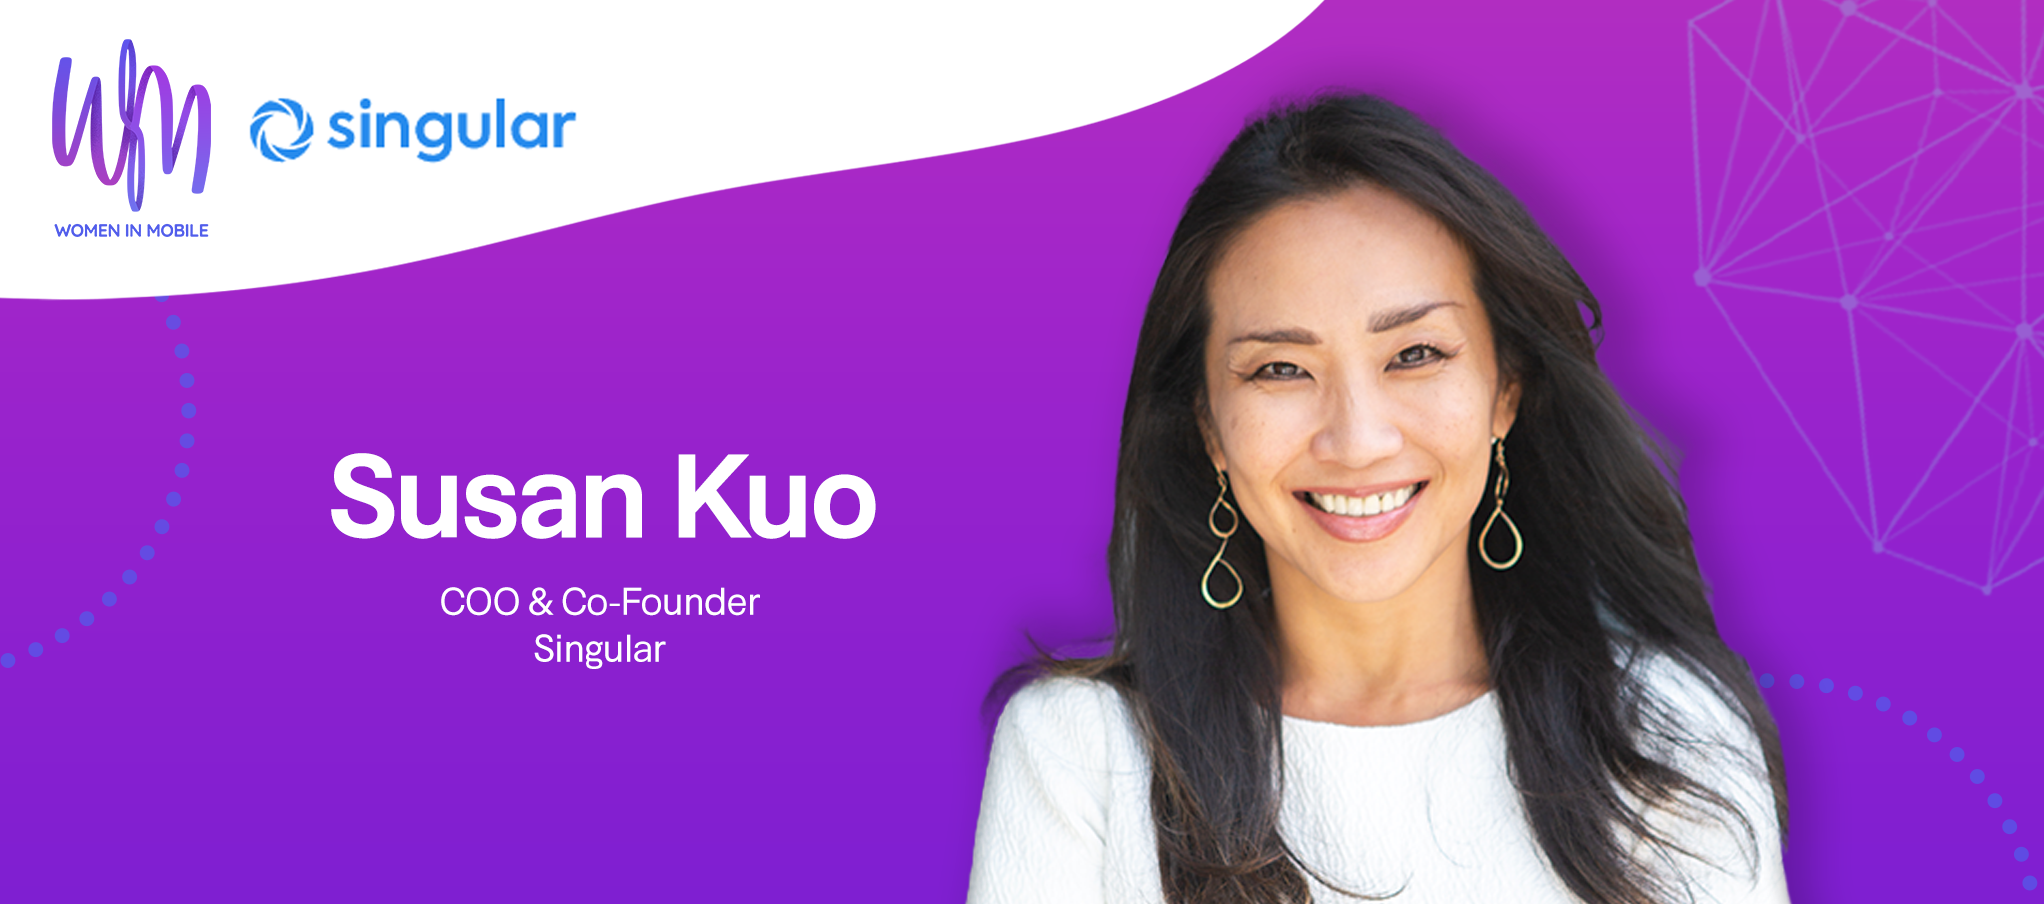 Susan Kuo, COO & Co-Founder at Singular at Aarki's Women in Mobile series